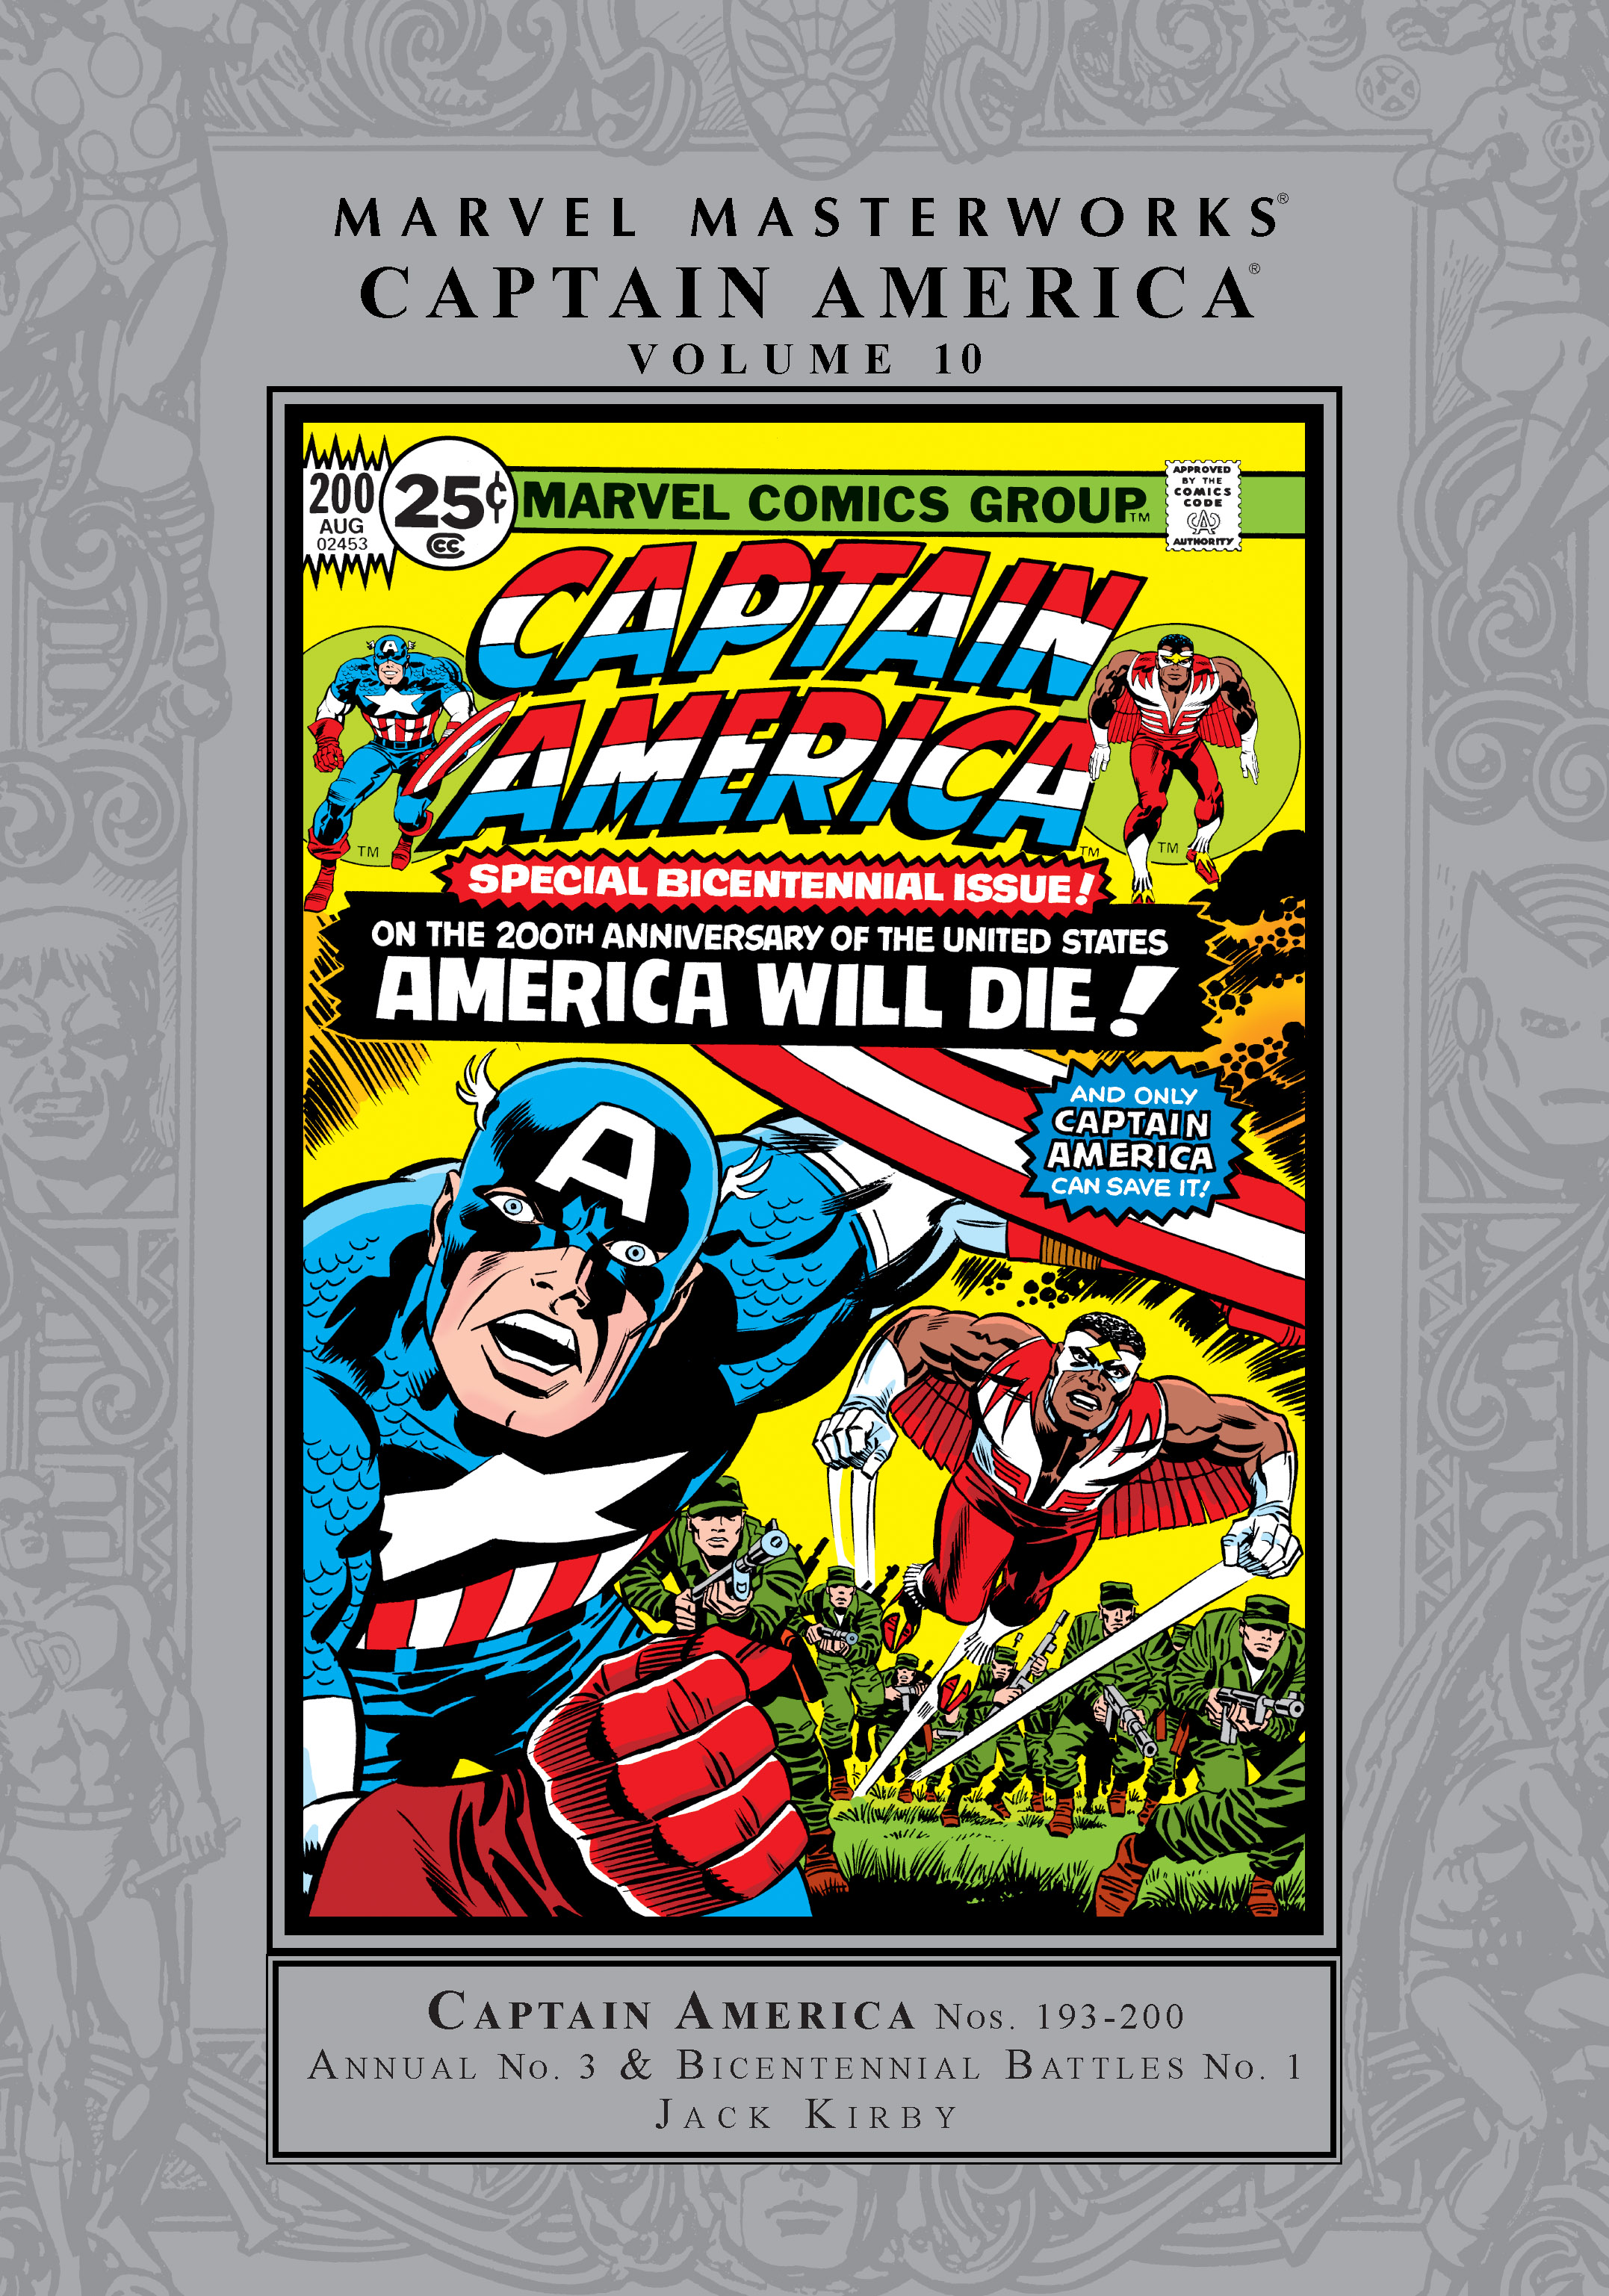 Marvel Masterworks: Captain America Vol. 10 (Hardcover)